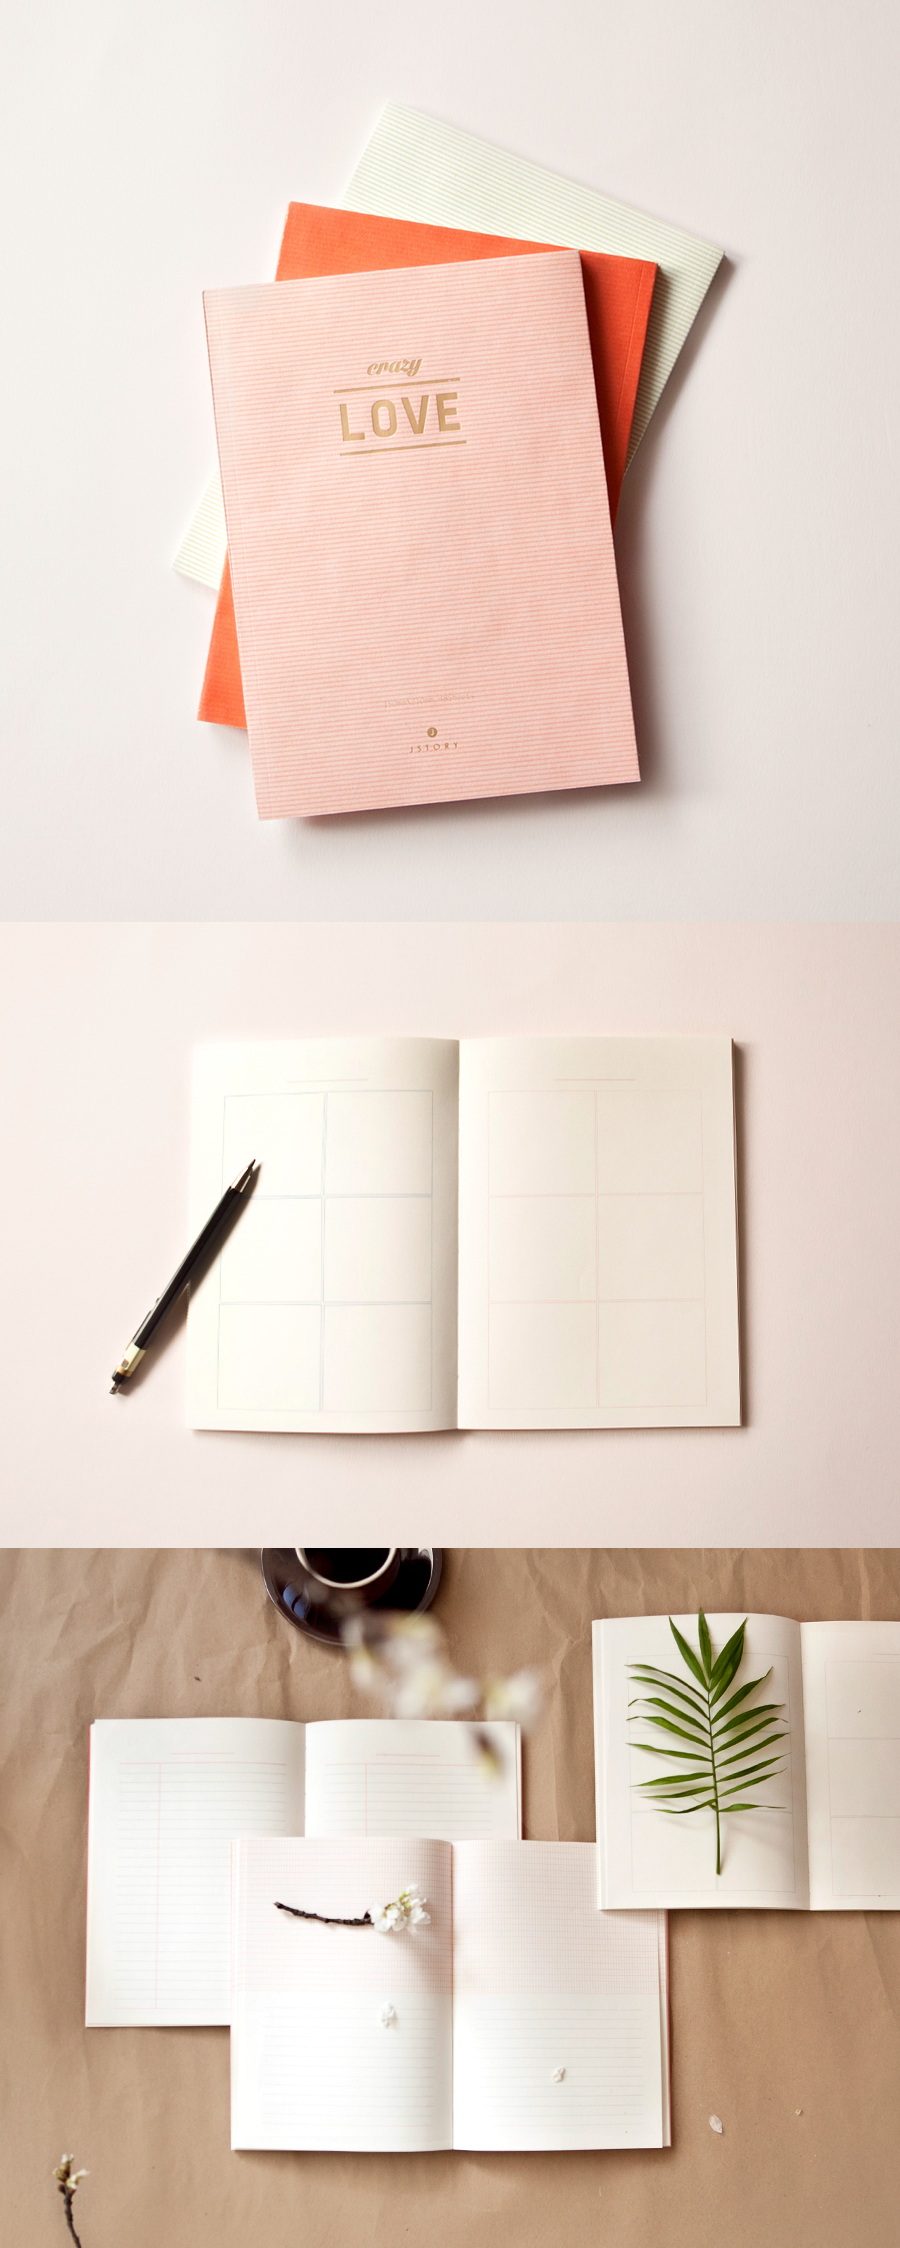 Put thought into where you record your thoughts. This eco-friendly notebook is made out of recycled paper & printed with soy ink so you can do your part to reduce your ecological footprint while writing notes, recording memories, or brainstorming ideas! Use it as a lovely school notebook, diary, or journal.